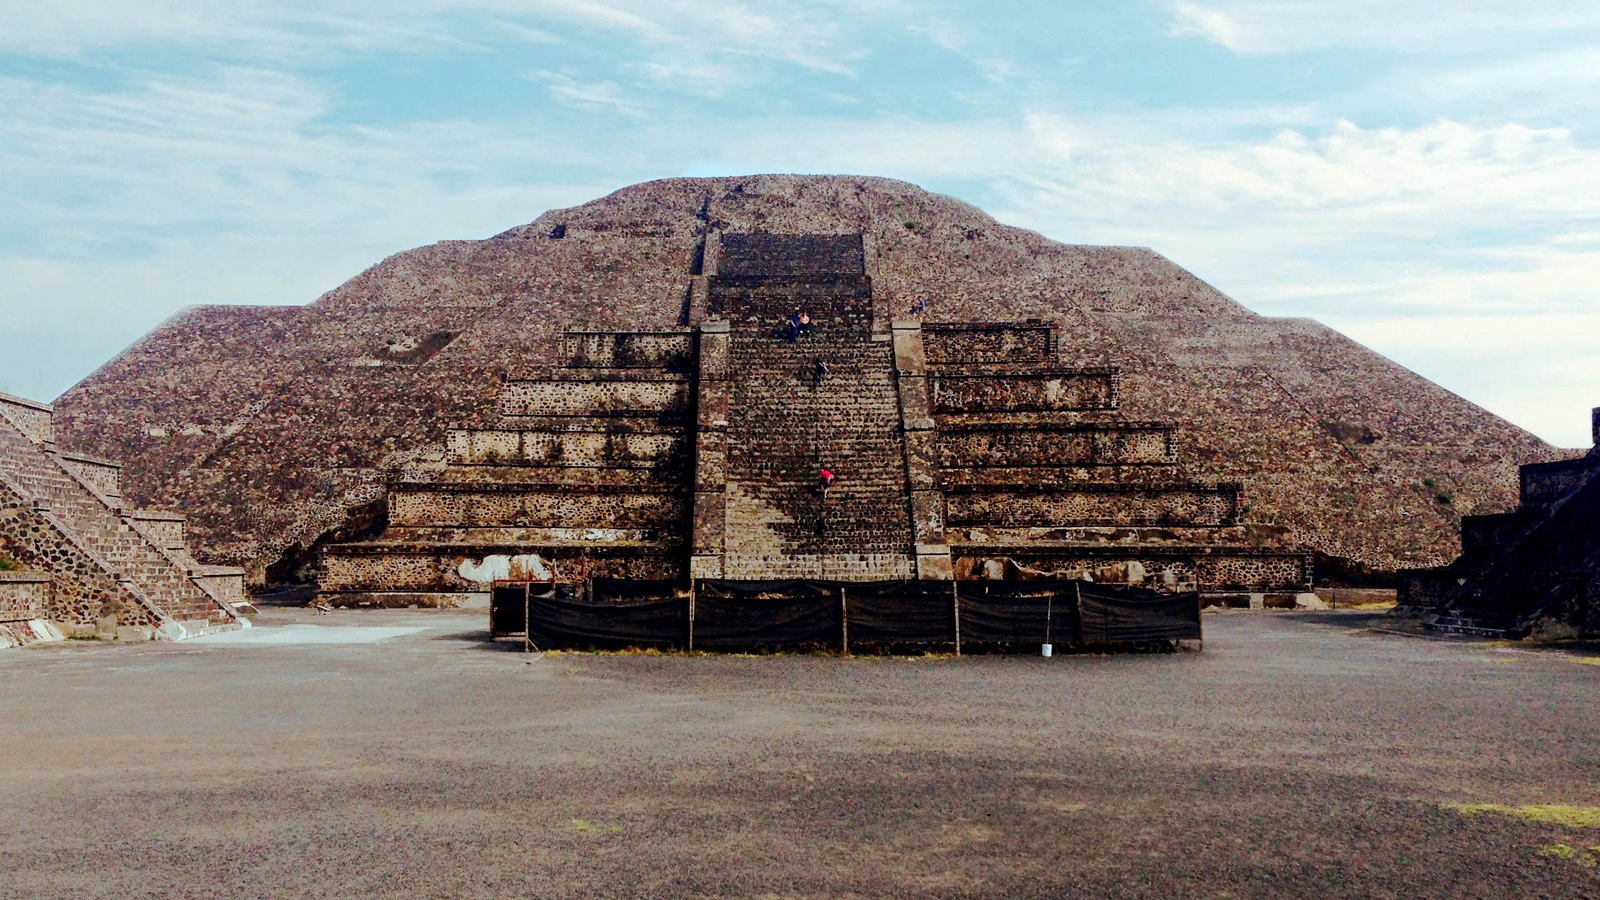 Capital Bus teotihuacan8.jpg